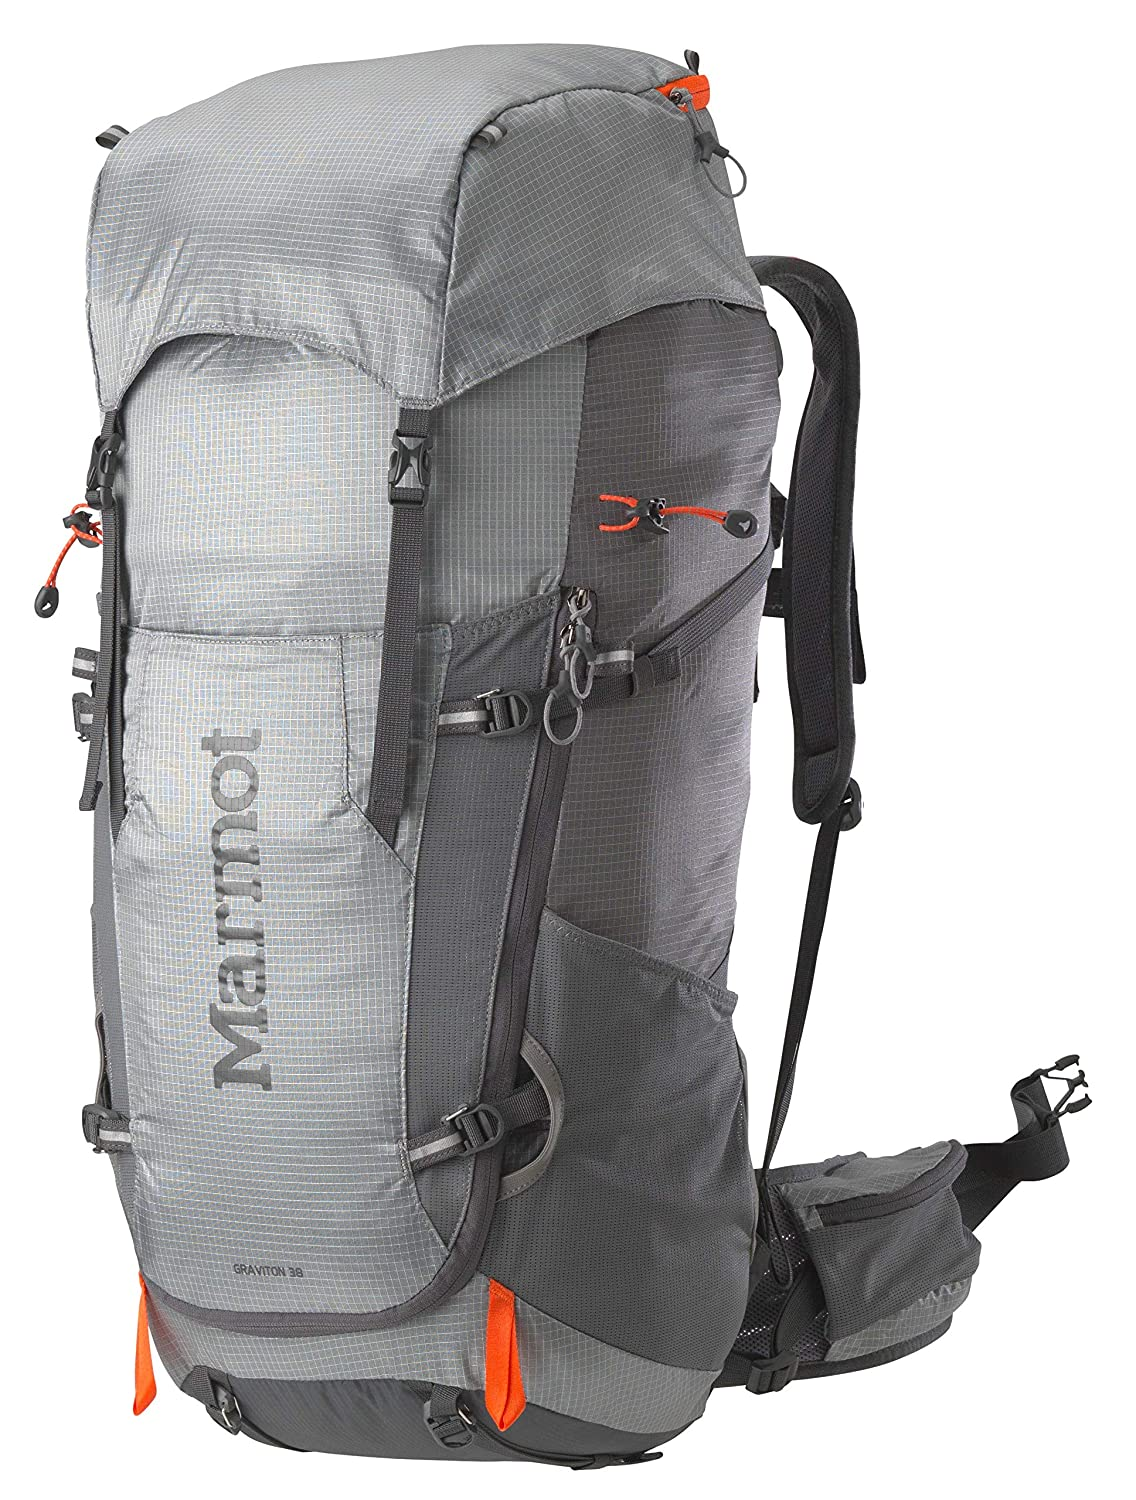 Marmot Graviton 38 Lightweight Hiking Backpack, Steel Cinder